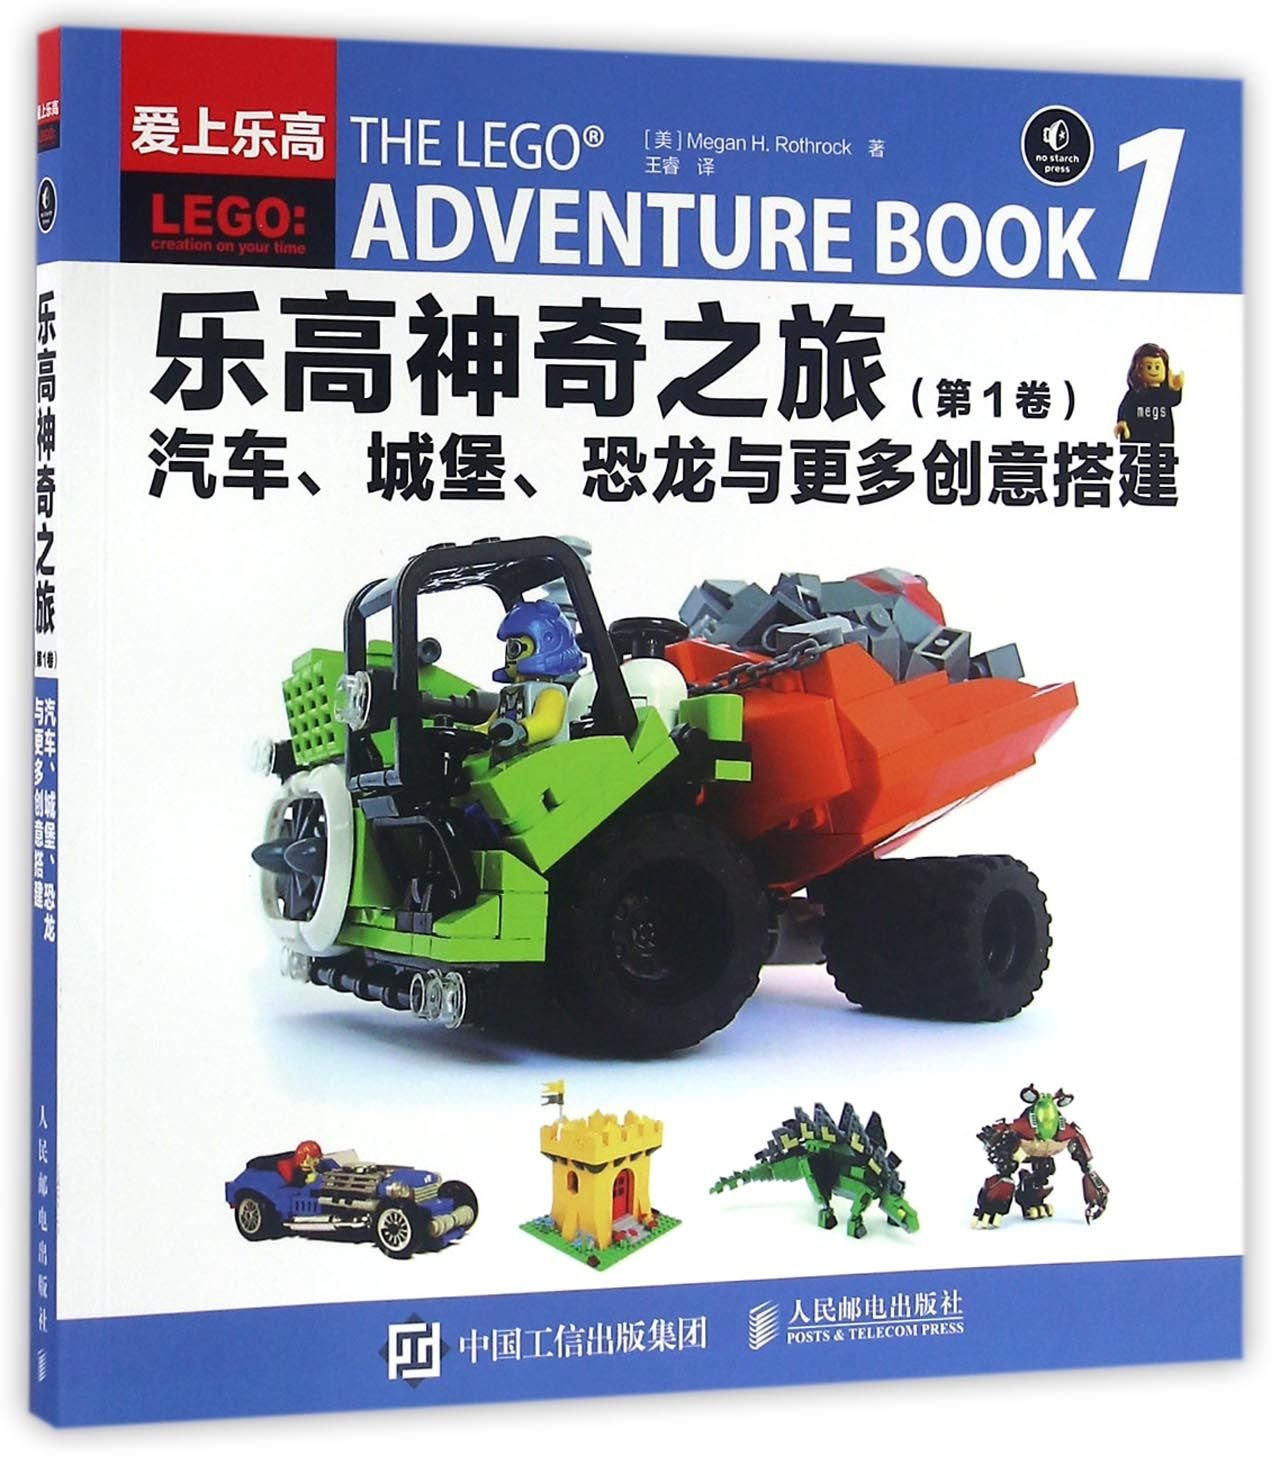 Read Online The LEGO Adventure Book, Vol. 1: Cars, Castles, Dinosaurs & More! (Chinese Edition) PDF